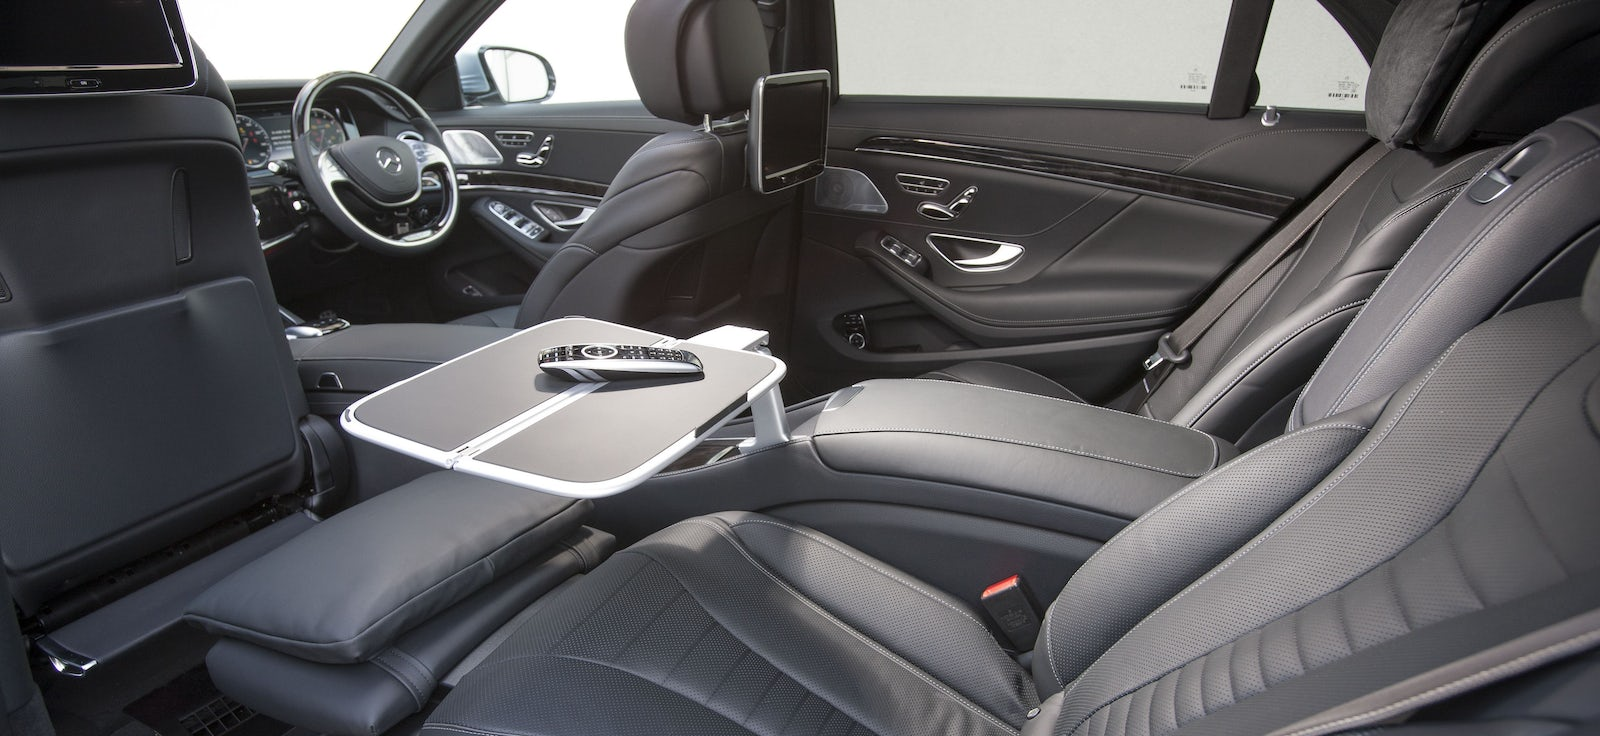 The cars with the best seats | carwow